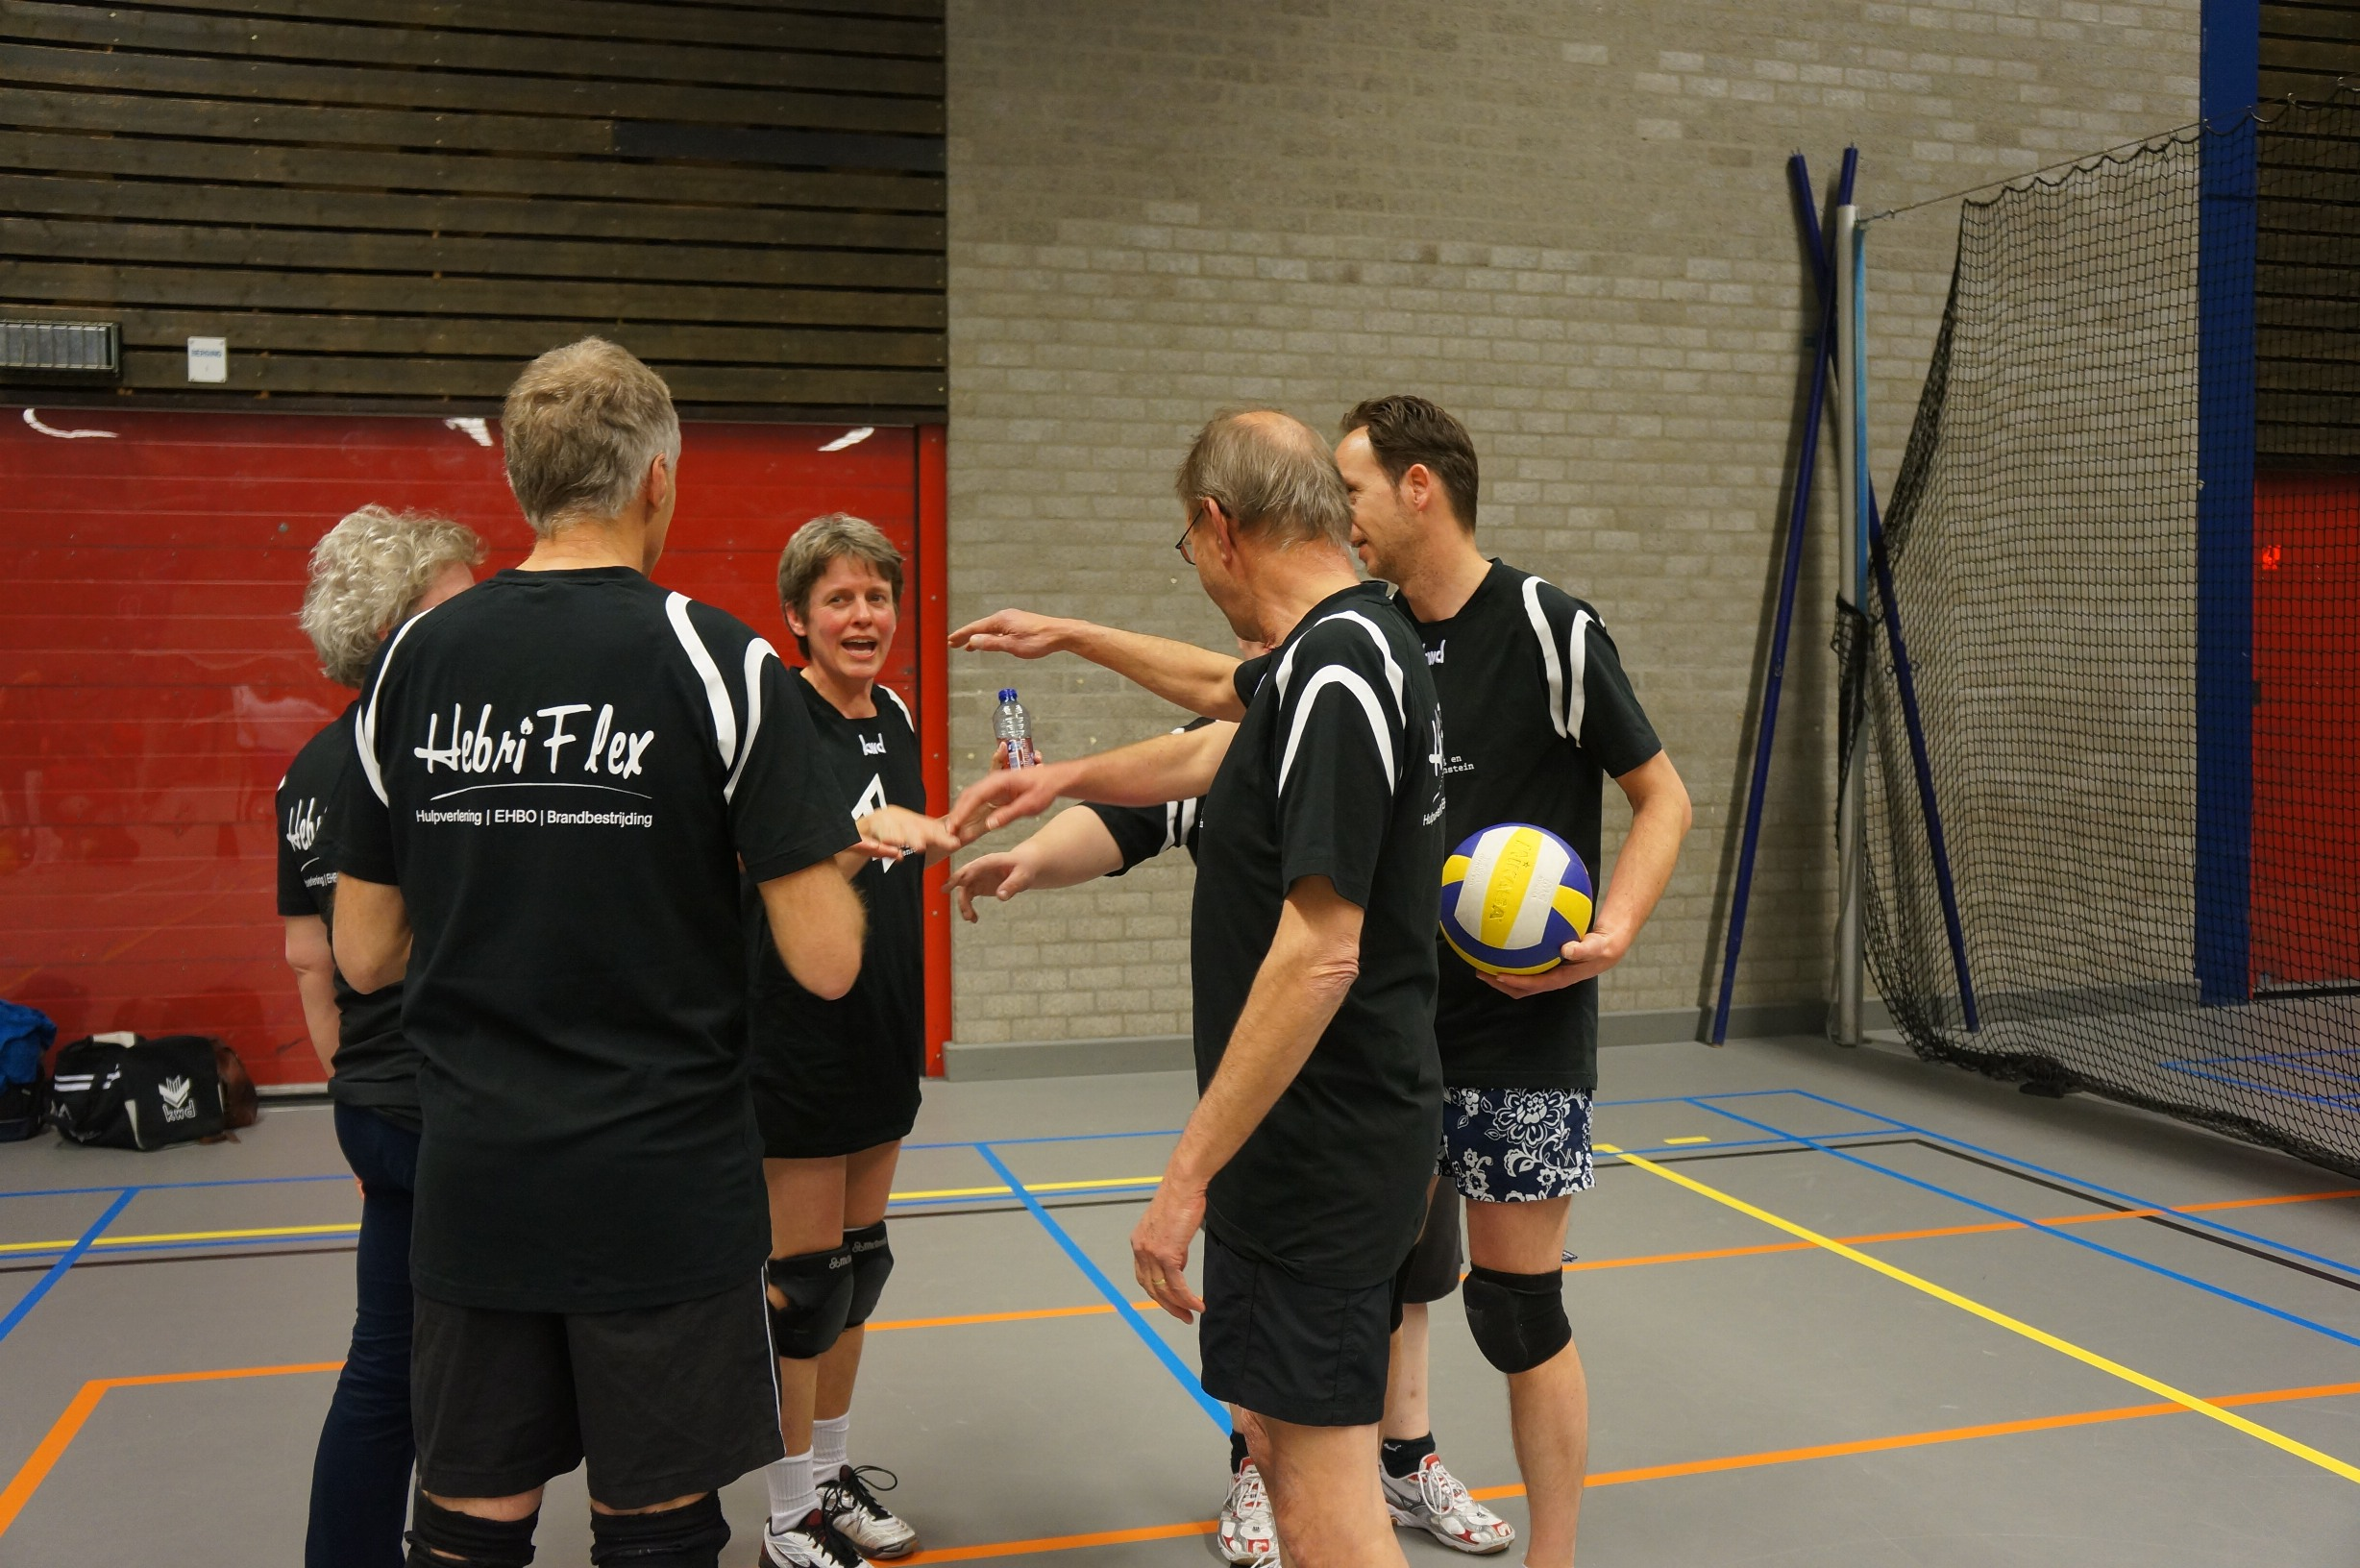 Volleybal op de Paasberg en Wellenstein